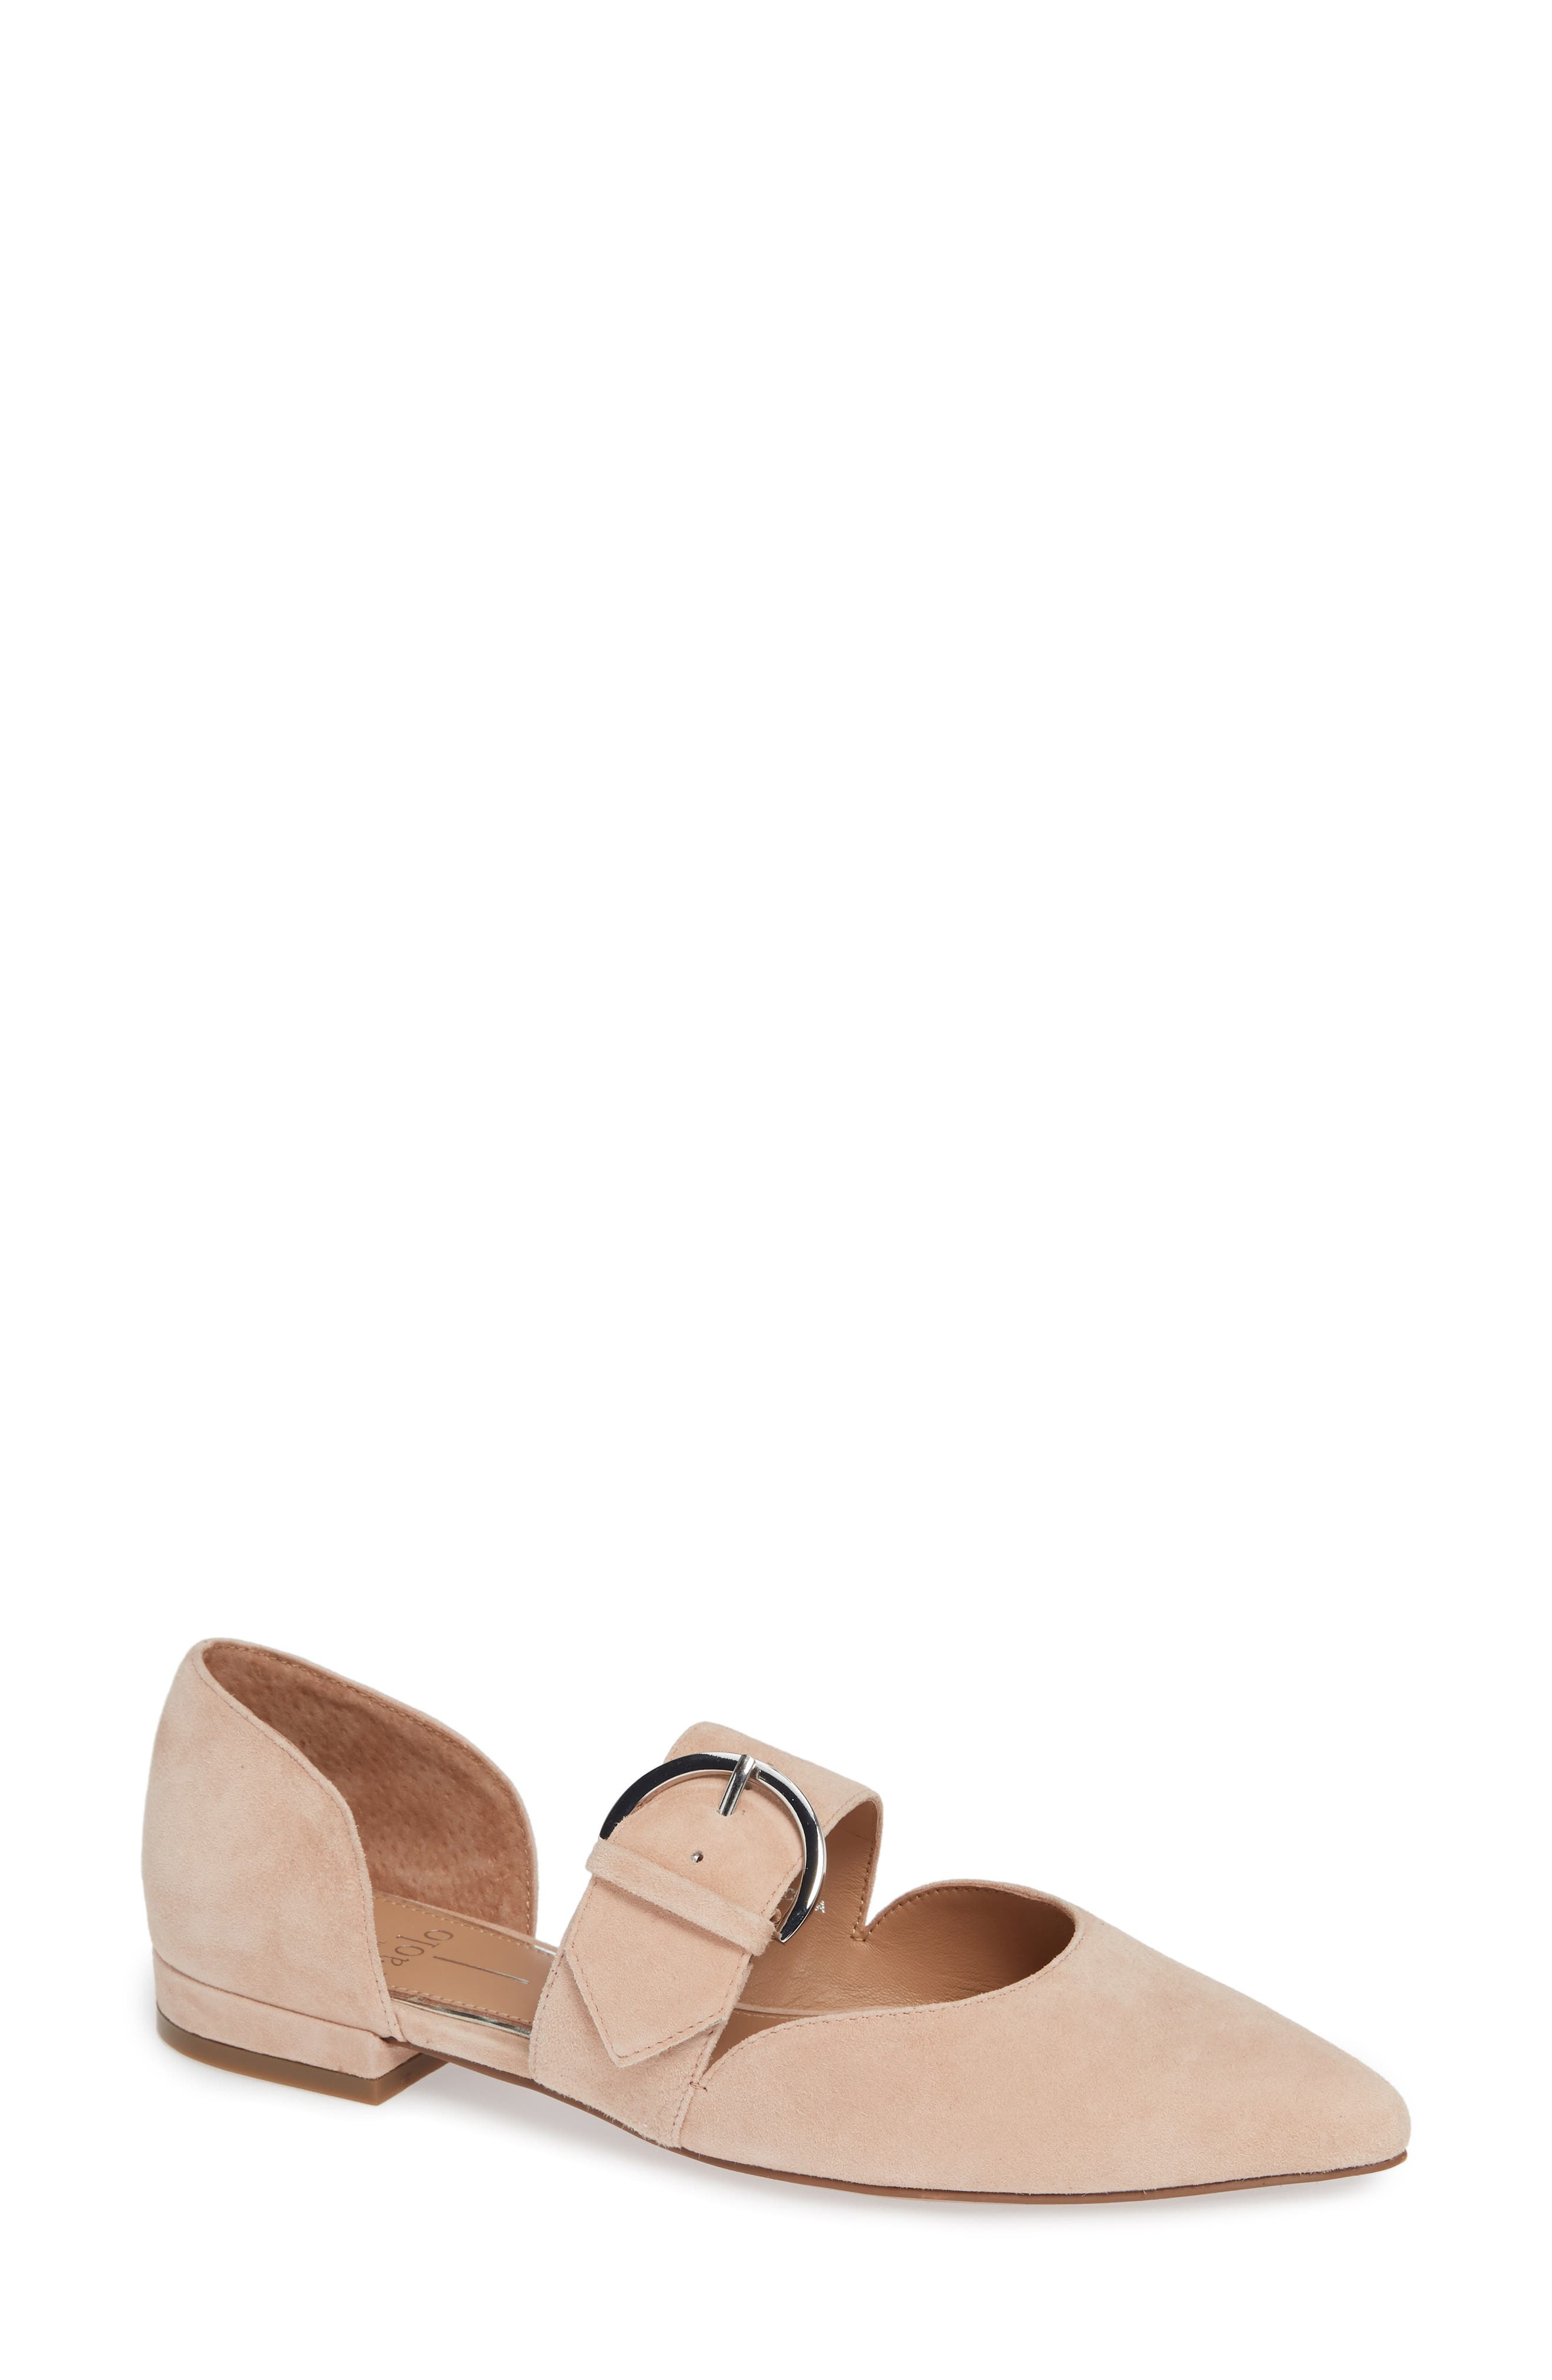 Linea Paolo Dean Pointy Toe Flat, Pink